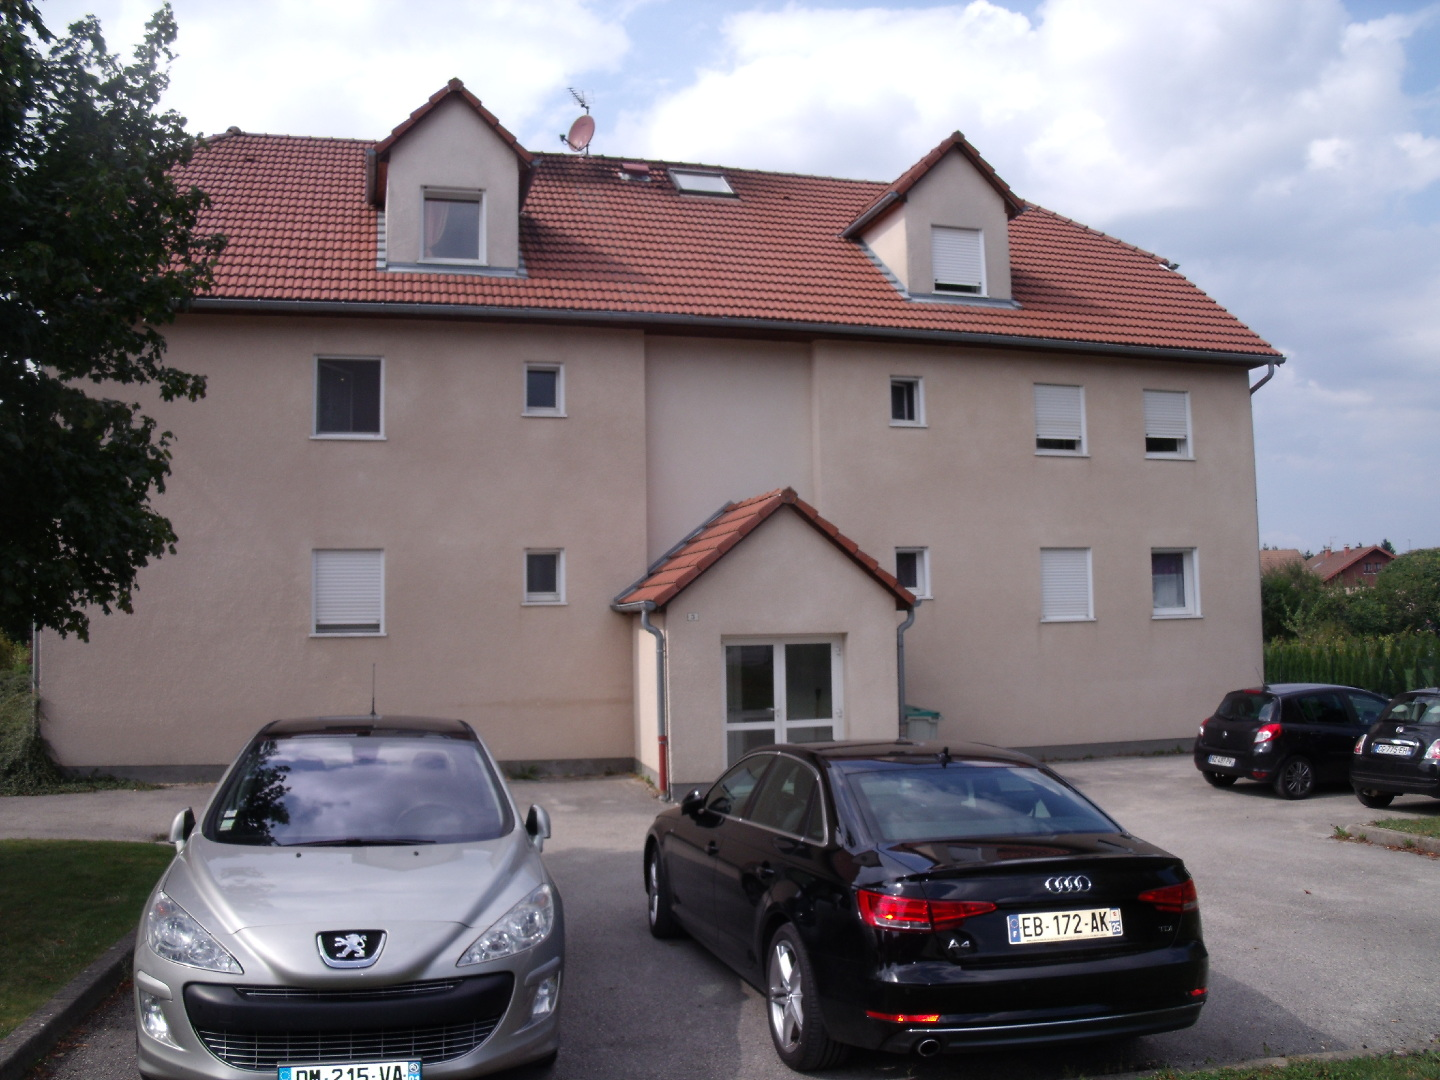 Achat vente appartement f2 doubs village vendre for Garage ford pontarlier 25300